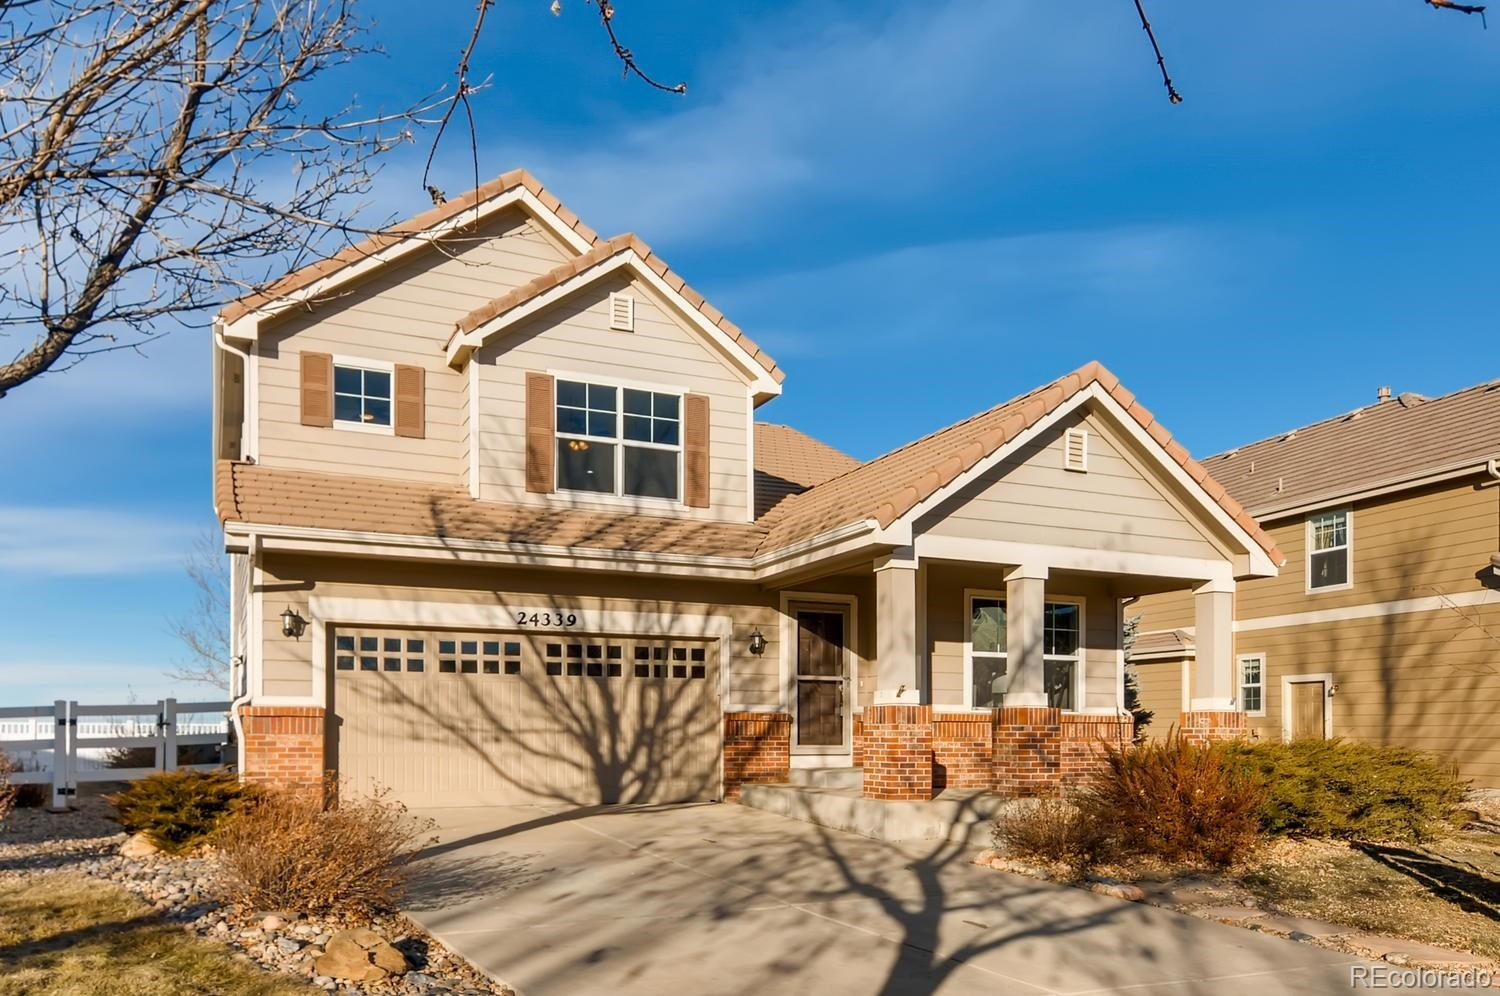 MLS# 4655945 - 1 - 24339 E Kansas Circle, Aurora, CO 80018